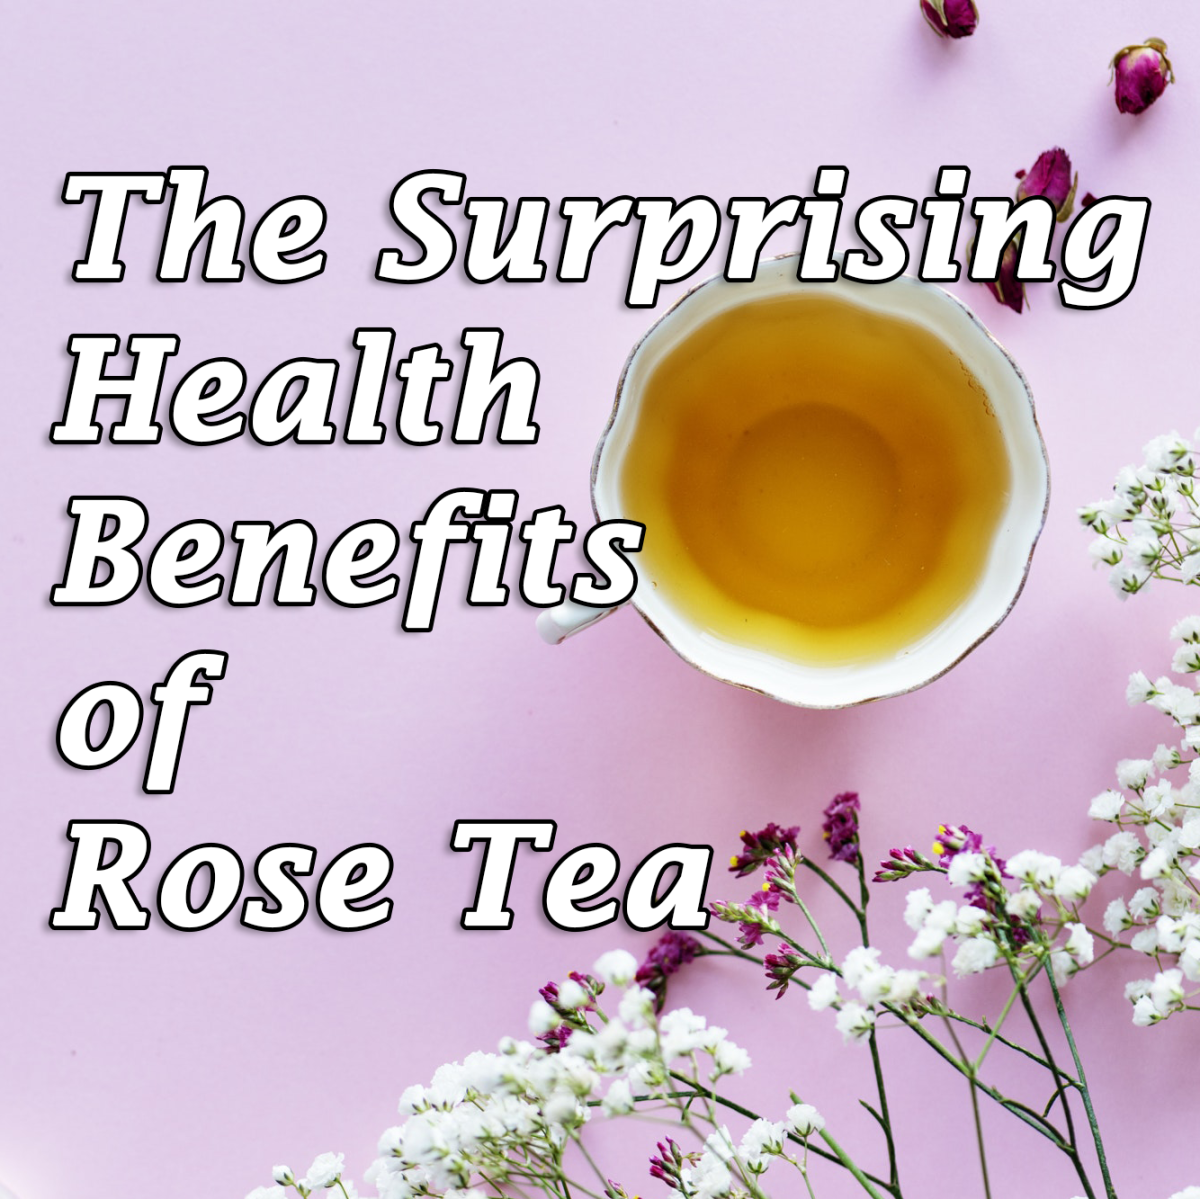 Health benefits of rosebud tea